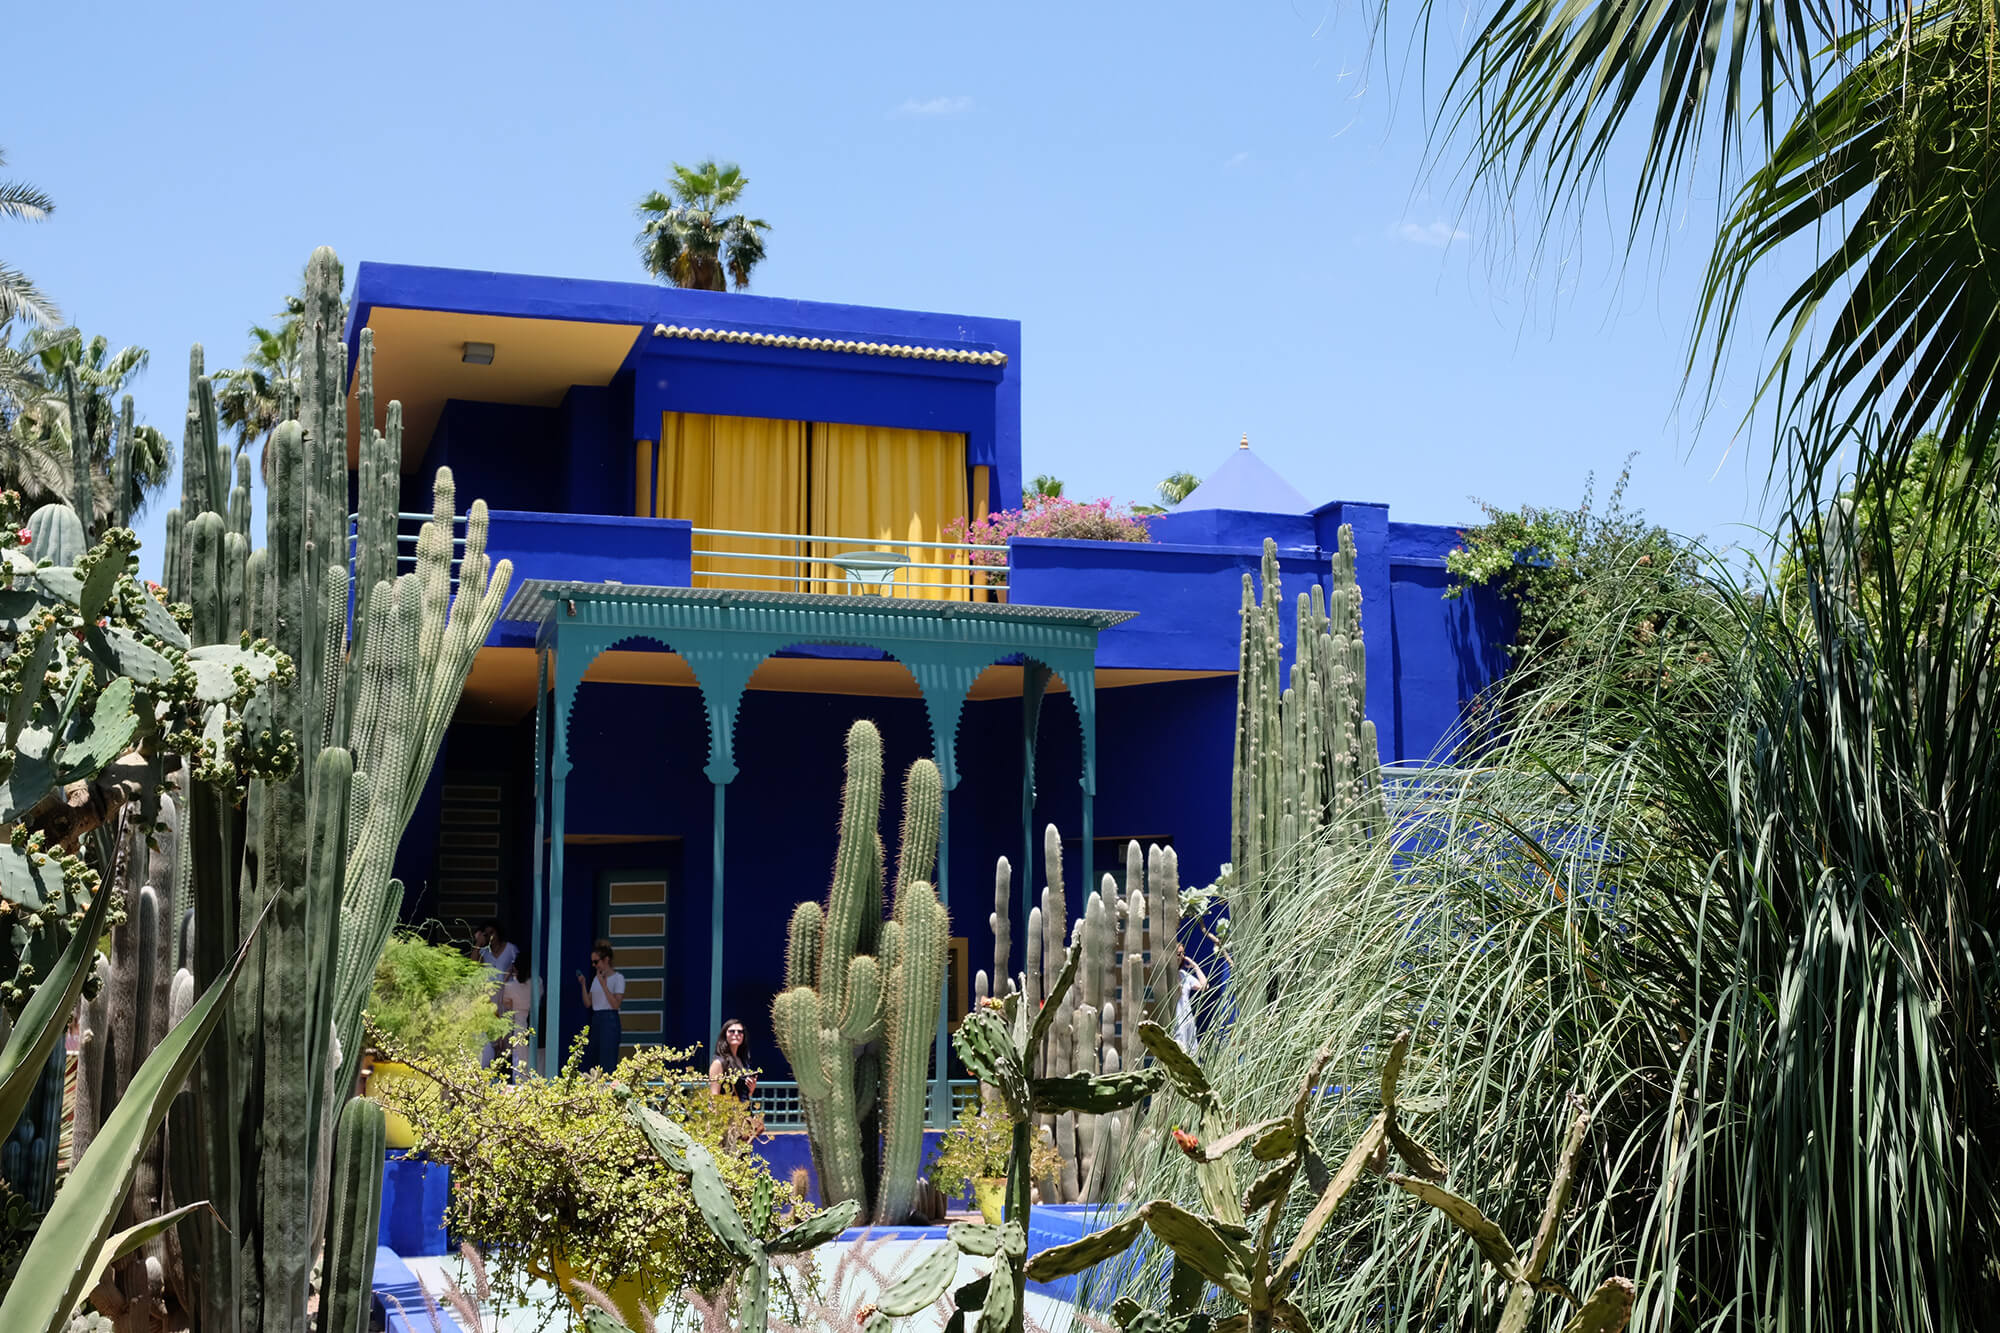 Sahara Desert Tour - Top Ten Things To Do in Morocco - Roam around Jardin Majorelle